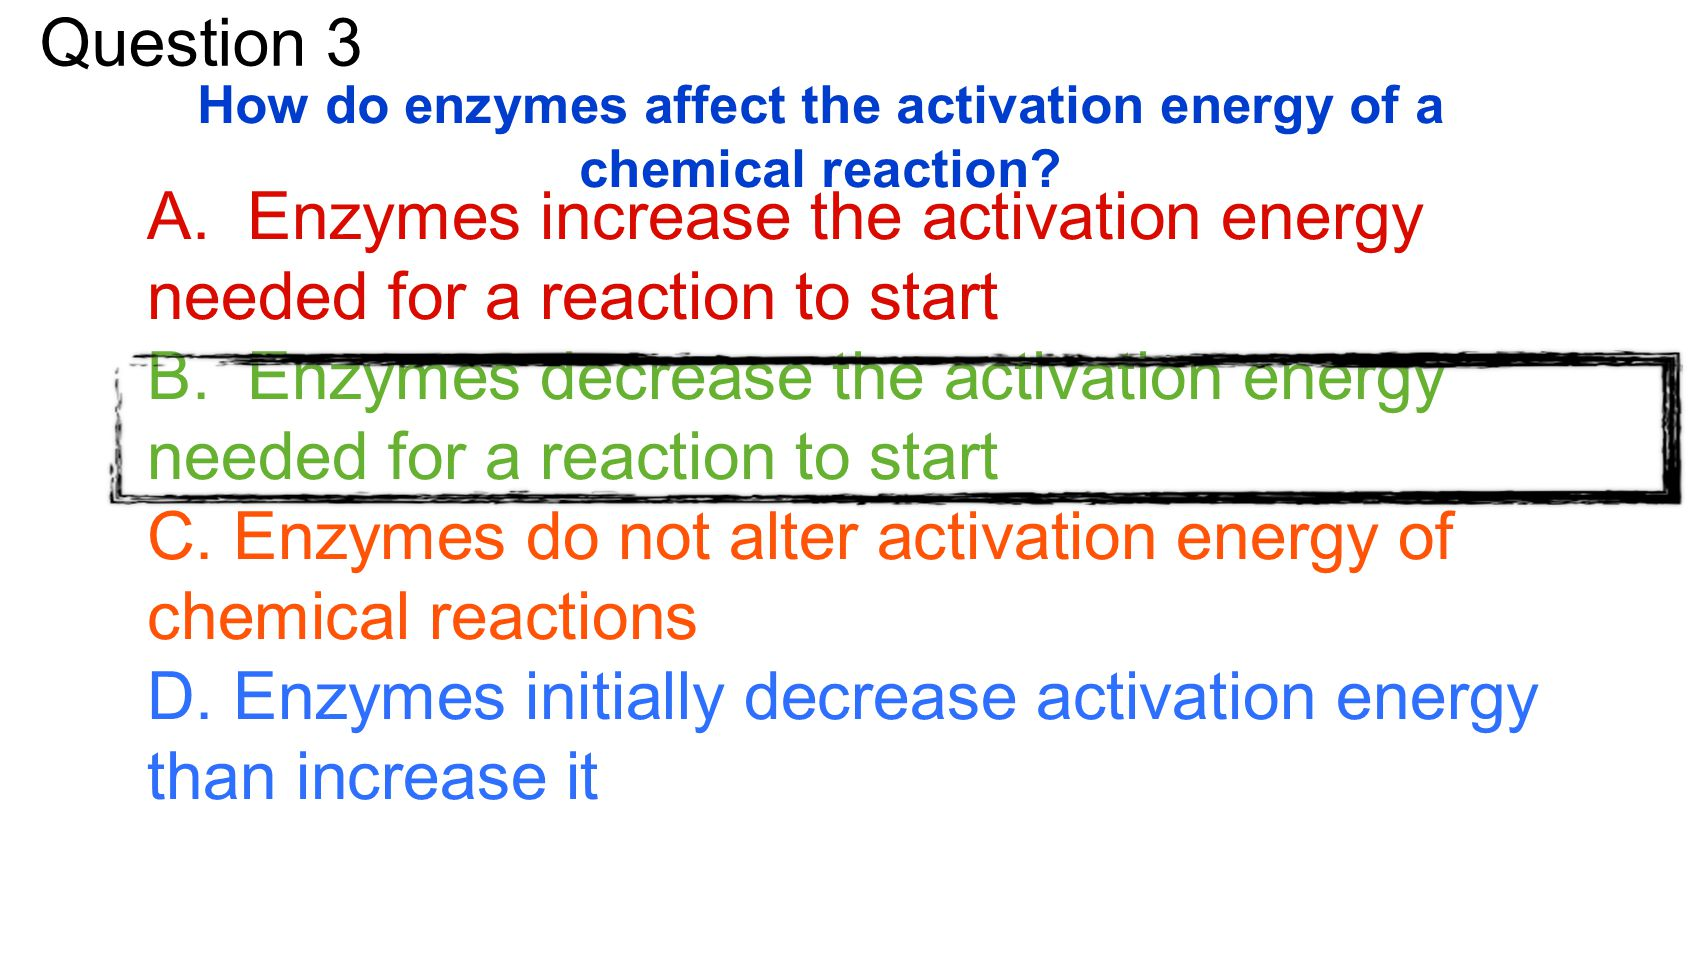 How do enzymes affect the activation energy of a chemical reaction